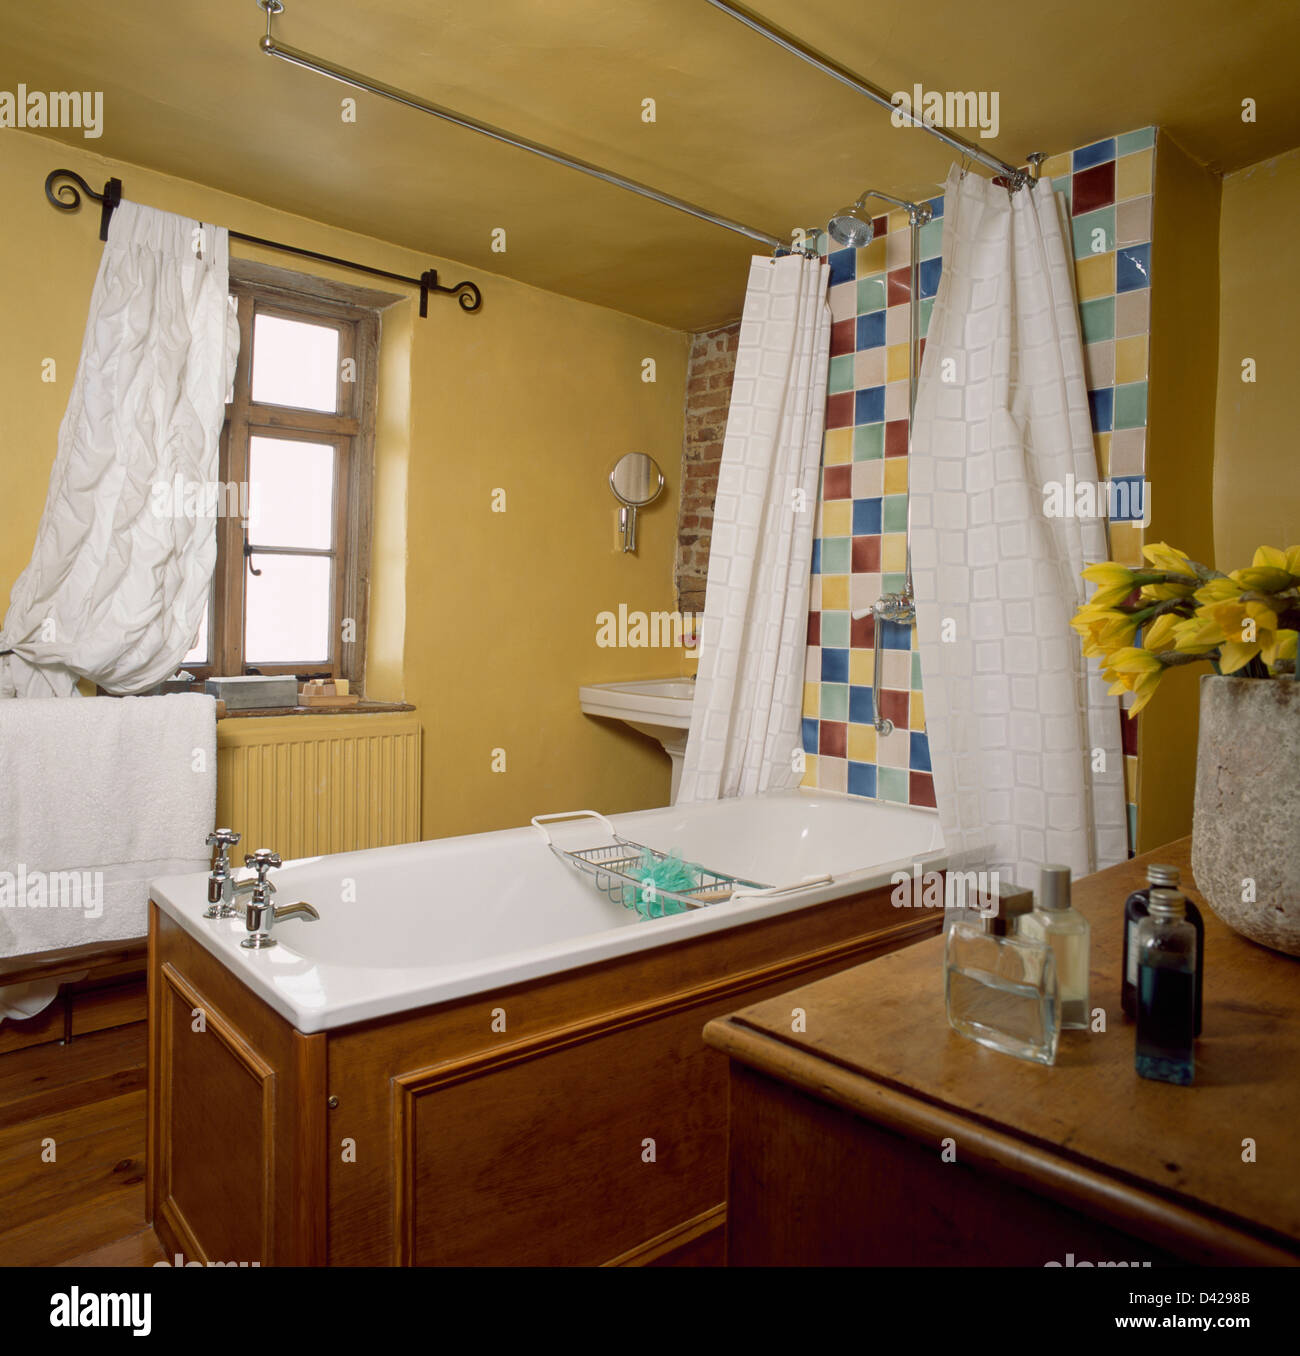 Cottage Shower Curtain White Shower Curtains On Freestanding Wooden Panelled Bath In